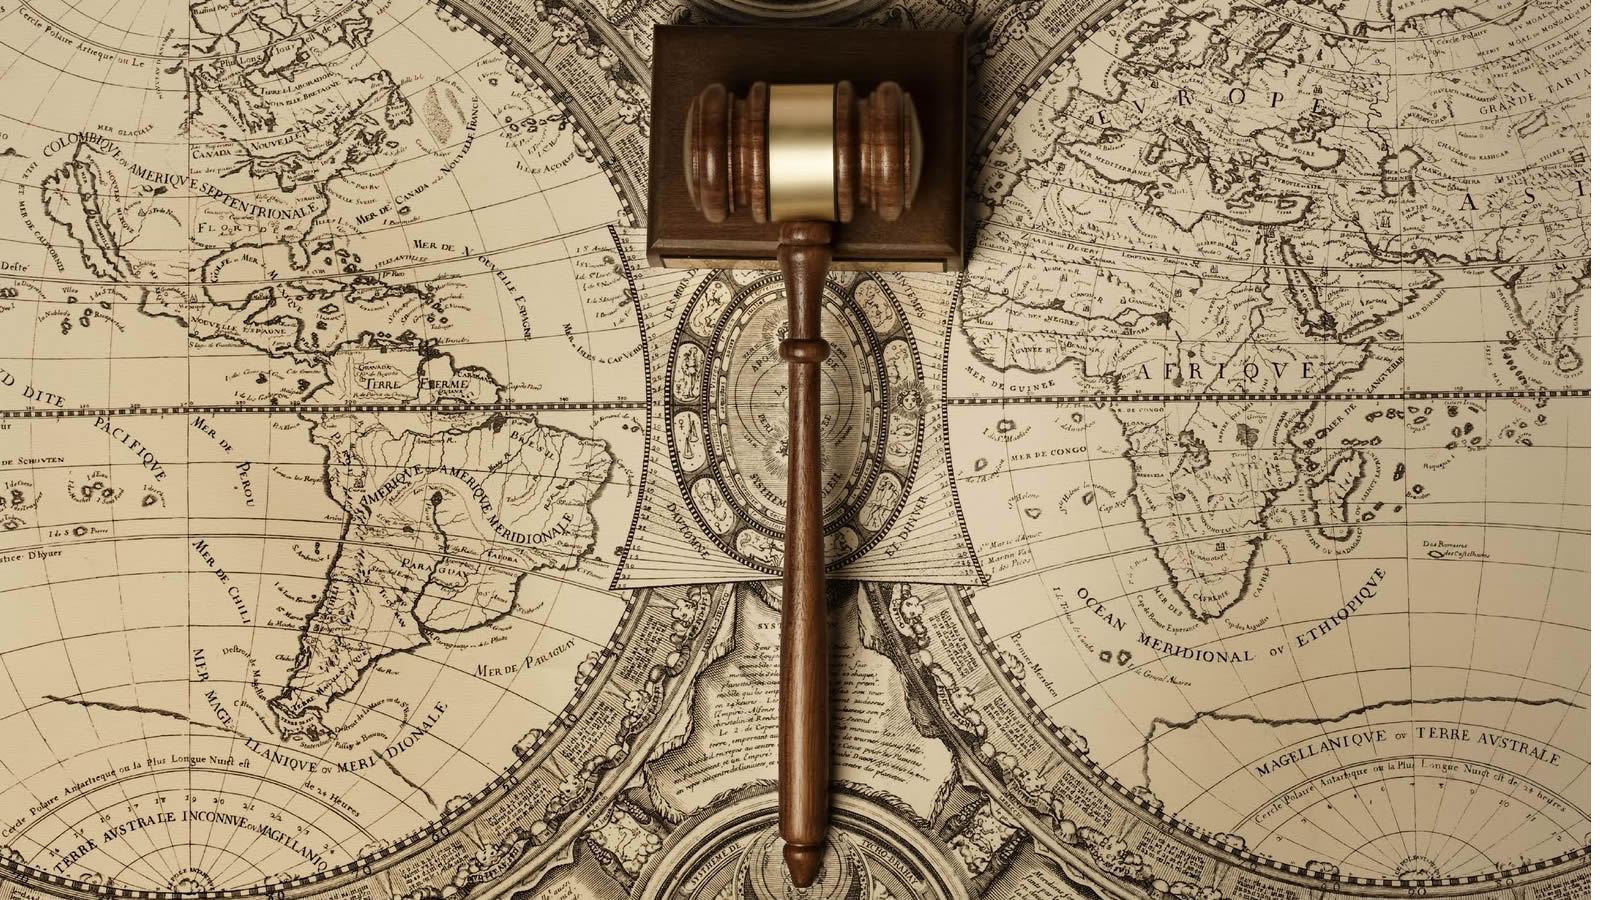 Wooden Gavel on Antique Map